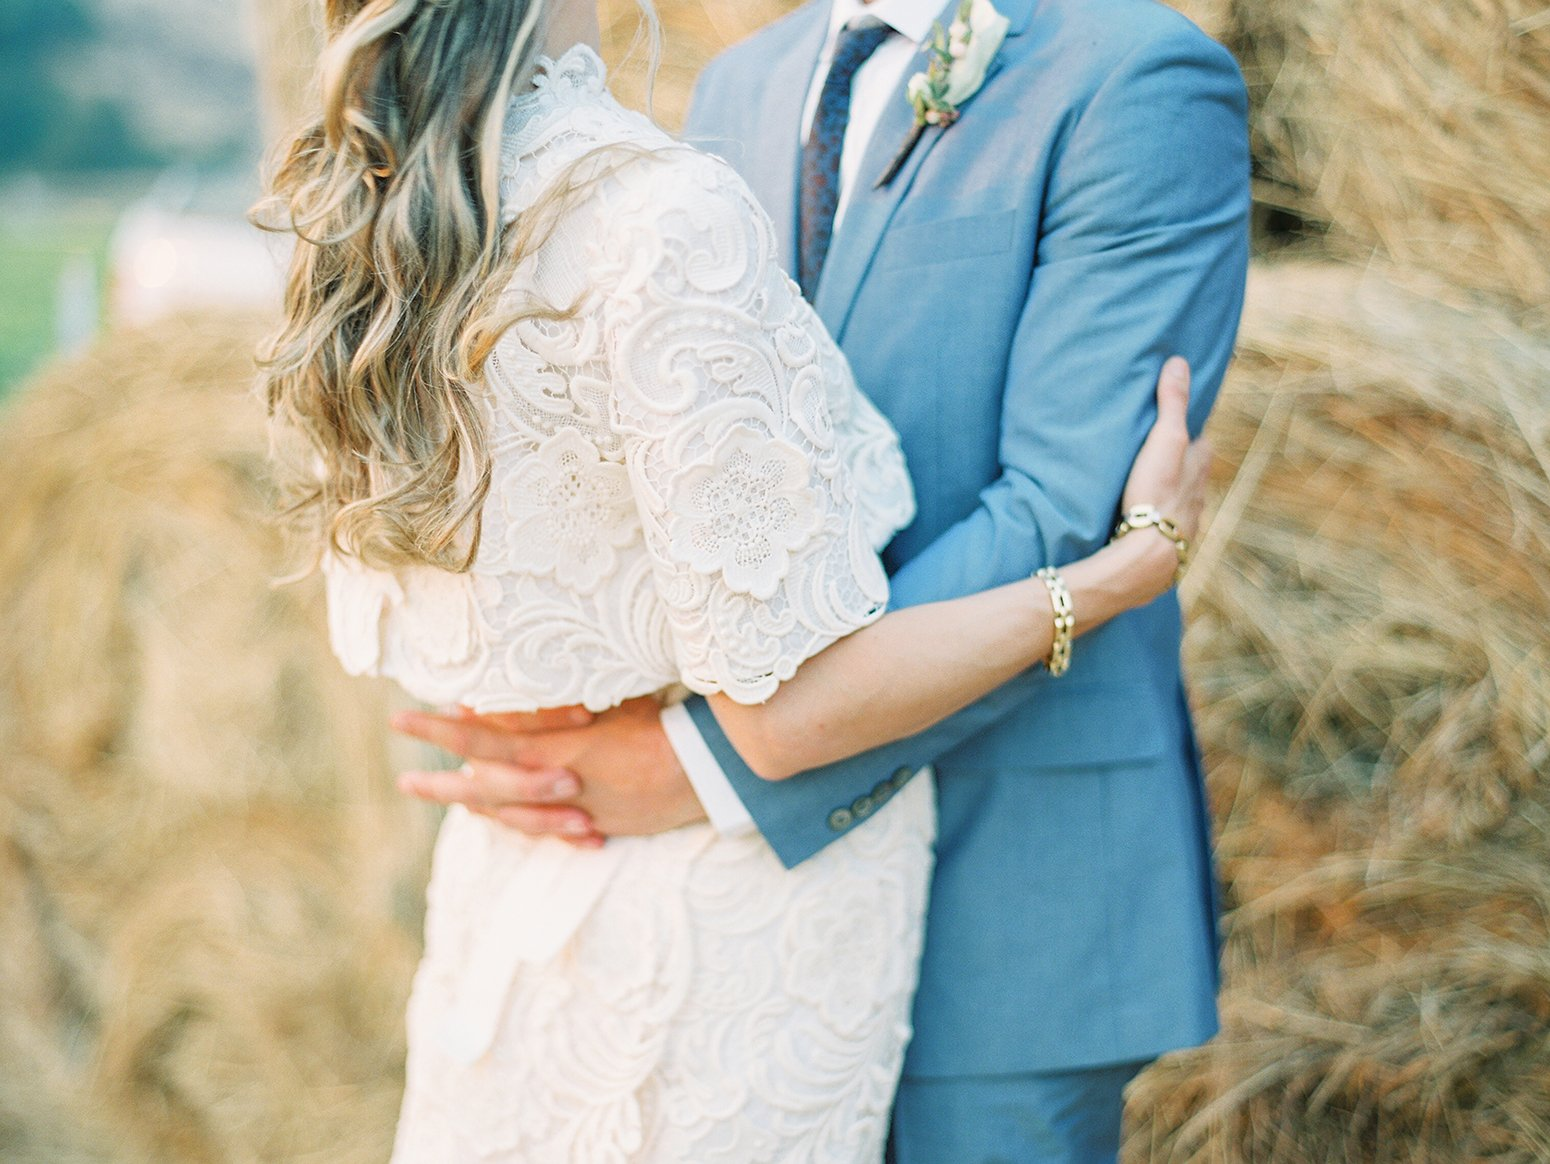 Wedding photography by Marina Koslow in Central Oregon.